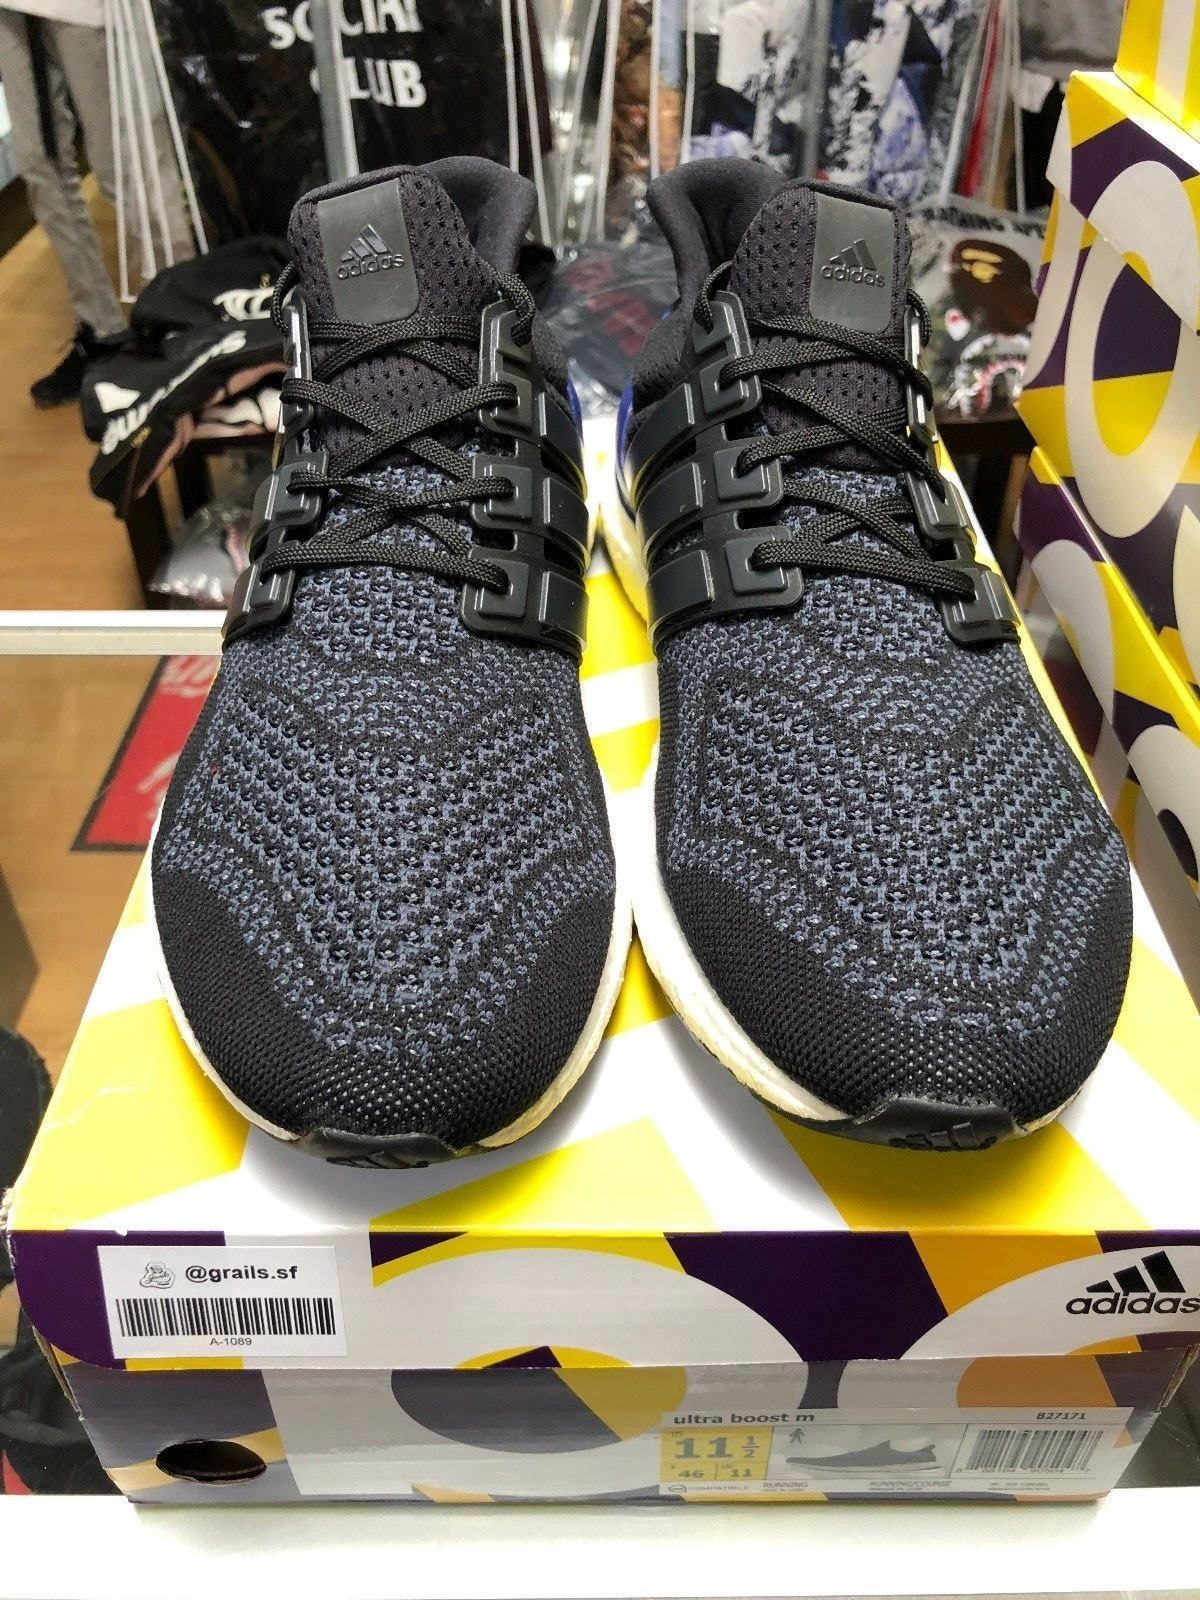 0a0c8e228 Adidas Ultra Boost 1.0 OG Black Gold Purple (B27171) size 11.5